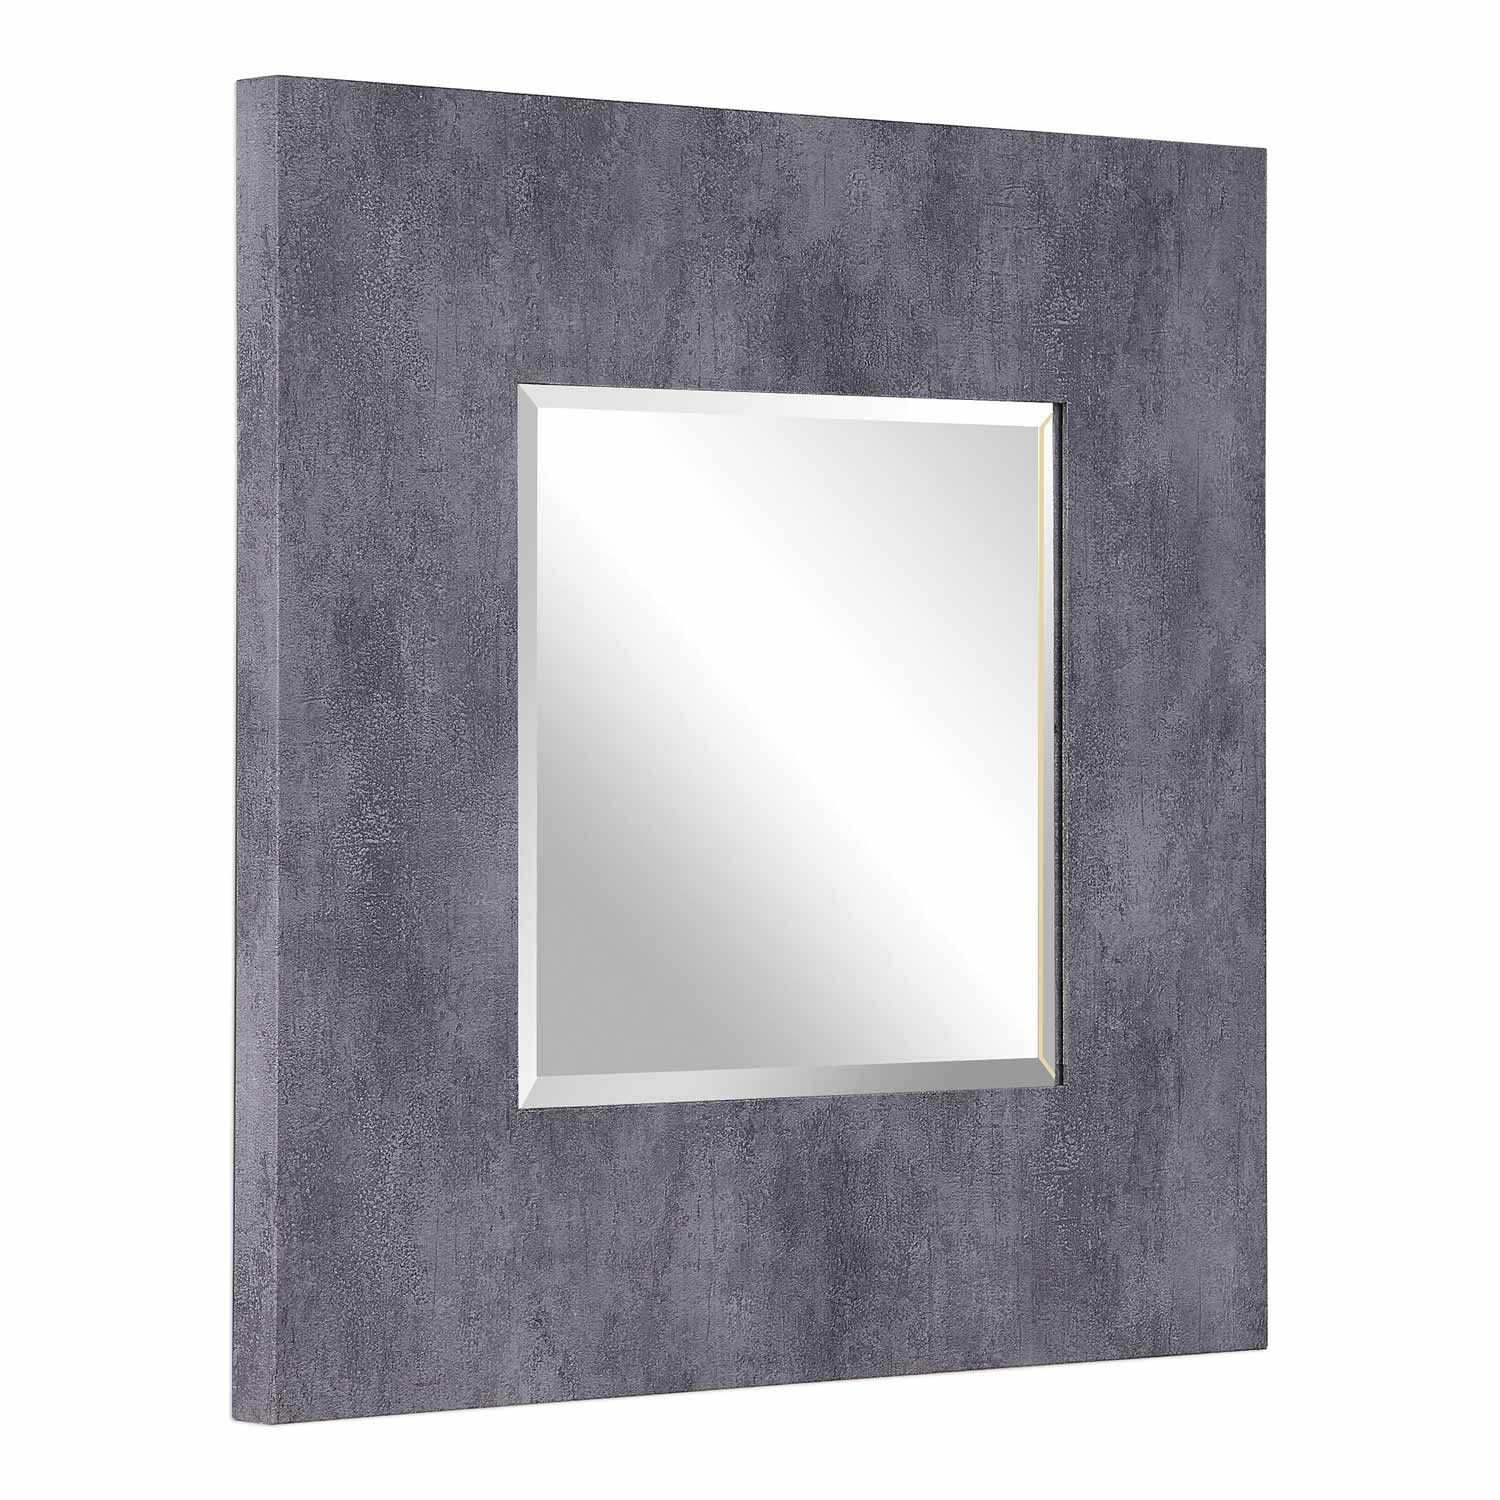 Uttermost Rohan Square Mirror - Gray